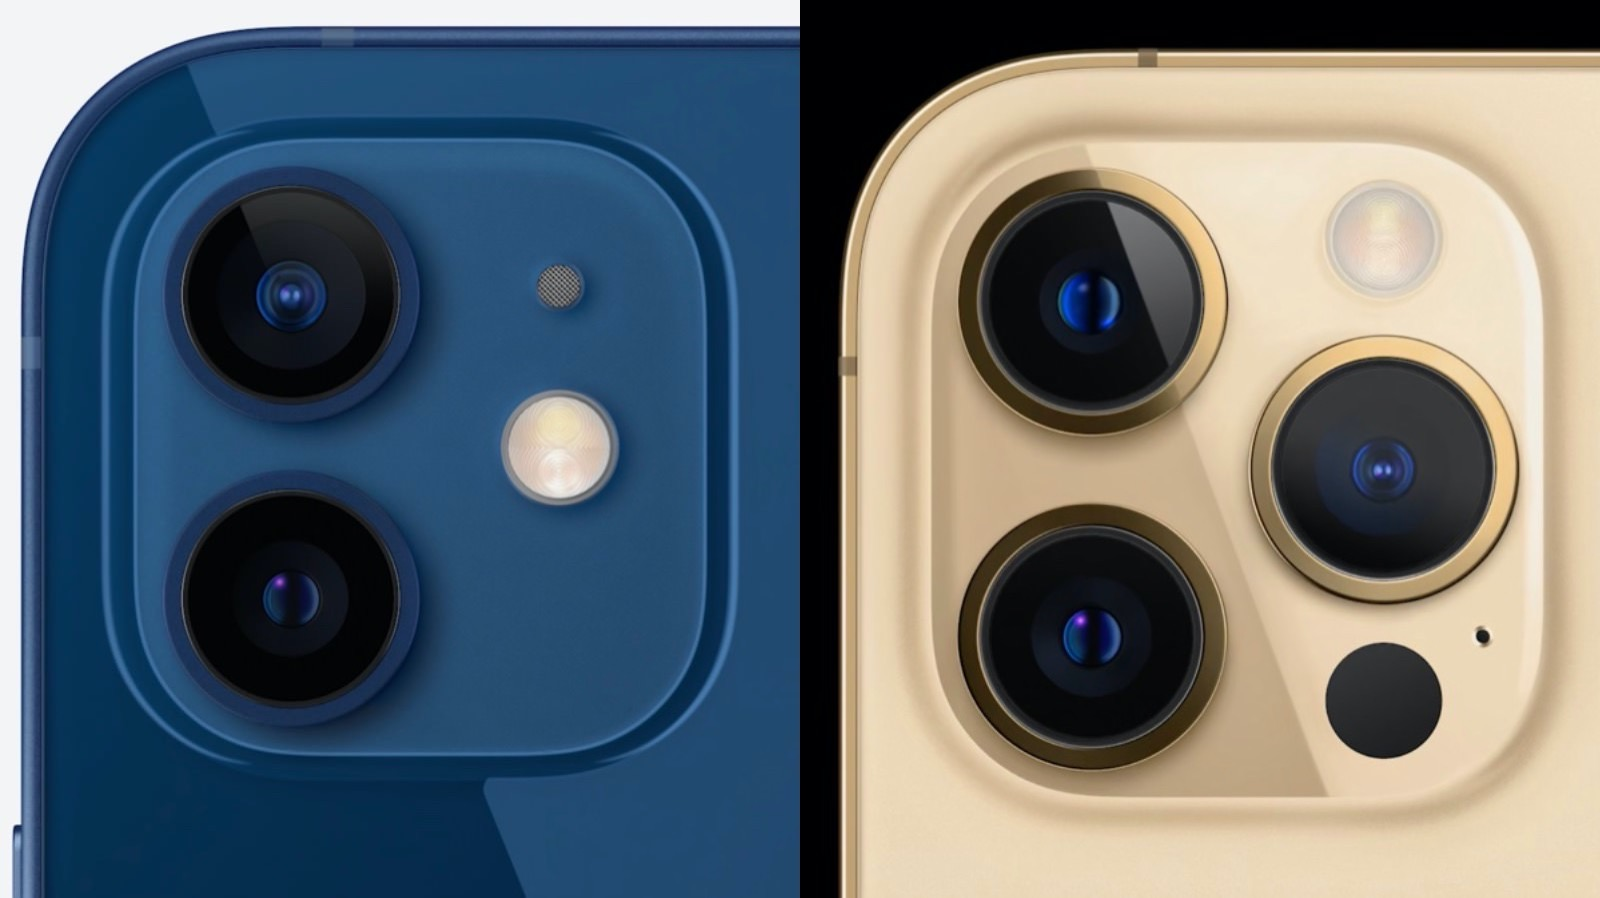 Iphone12 and 12pro camera comparison